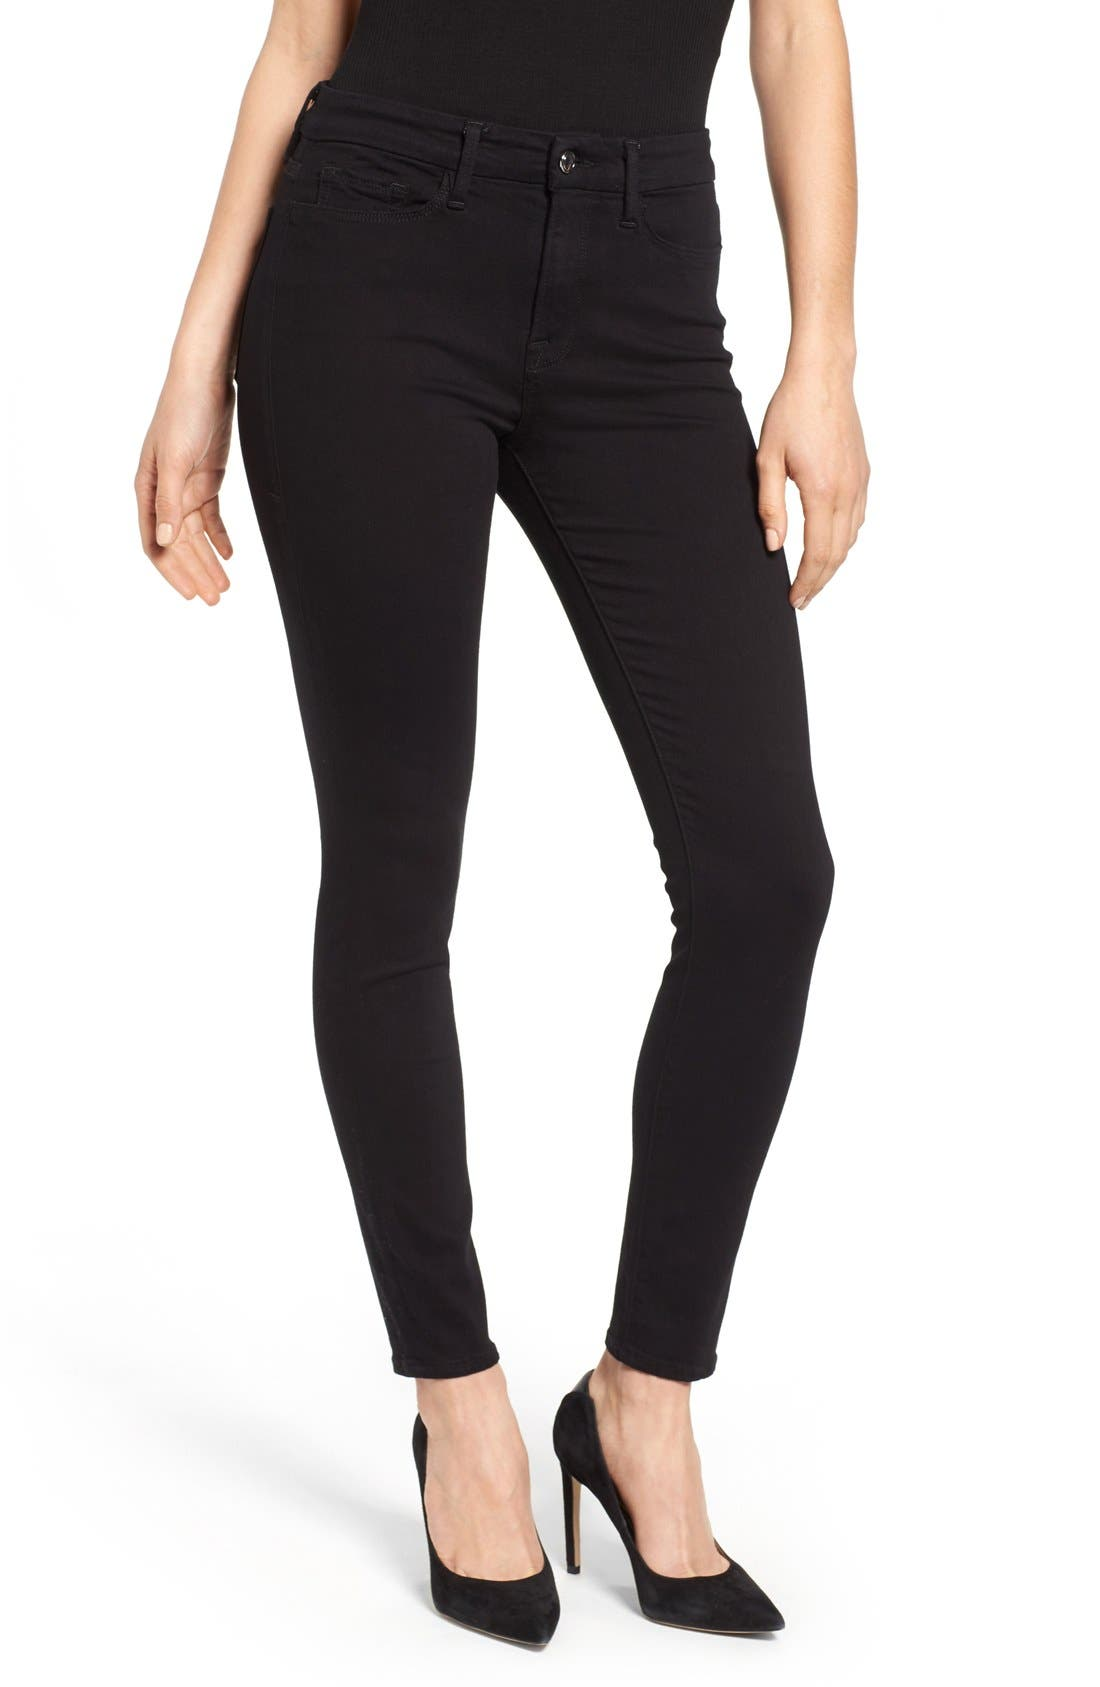 Main Image - Good American Good Legs High Rise Skinny Jeans (Black 001)